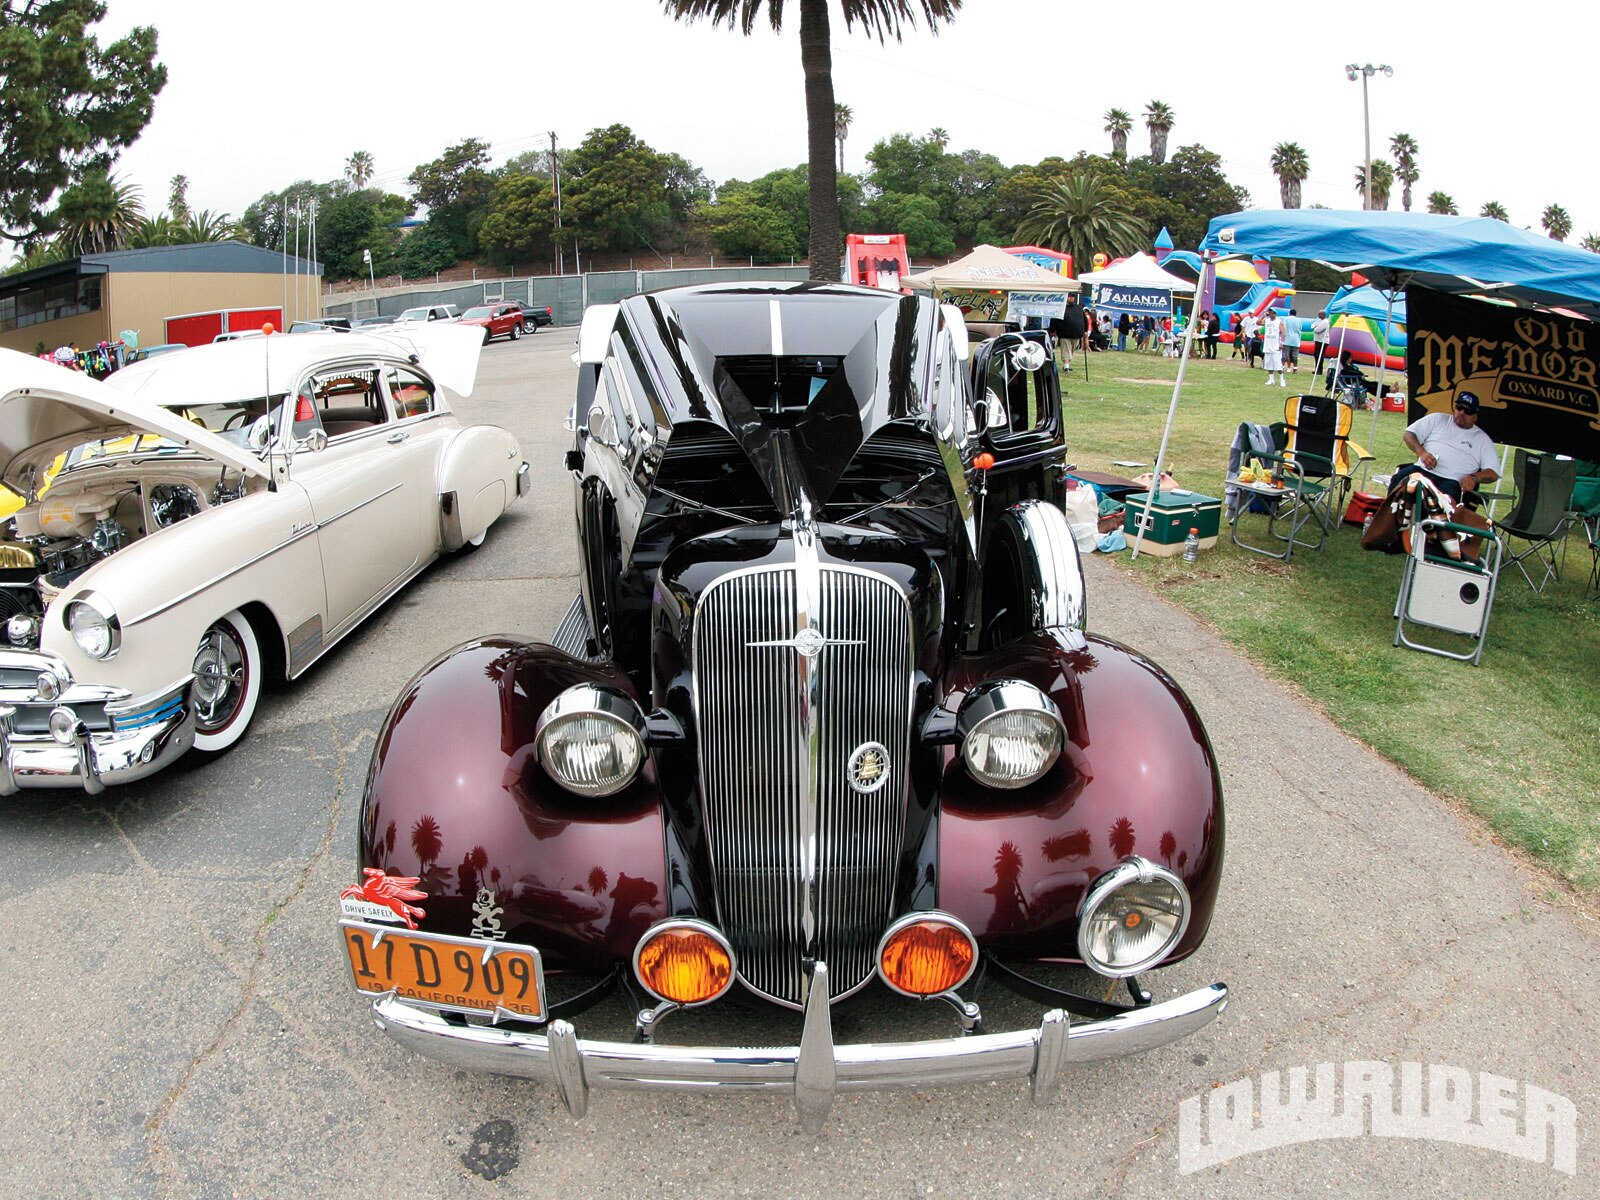 1212-lrmp-01-o-california-car-cycle-super-show-lowrider-bomb1